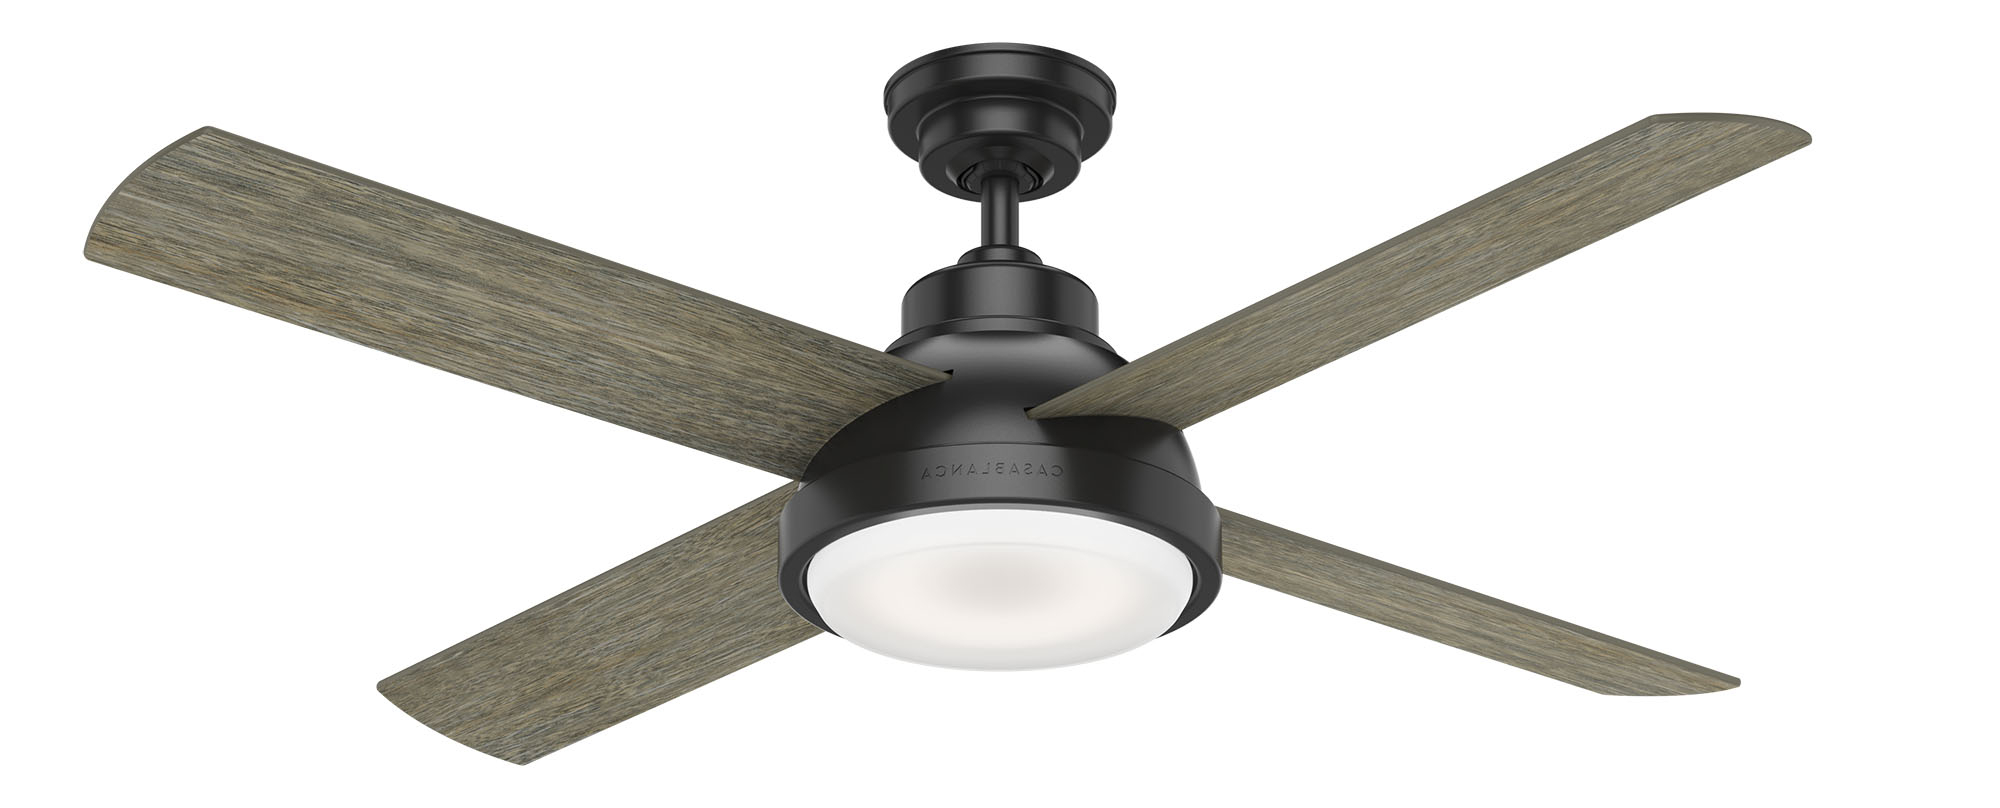 Casablanca Pertaining To Paige 3 Blade Led Ceiling Fans (View 2 of 20)